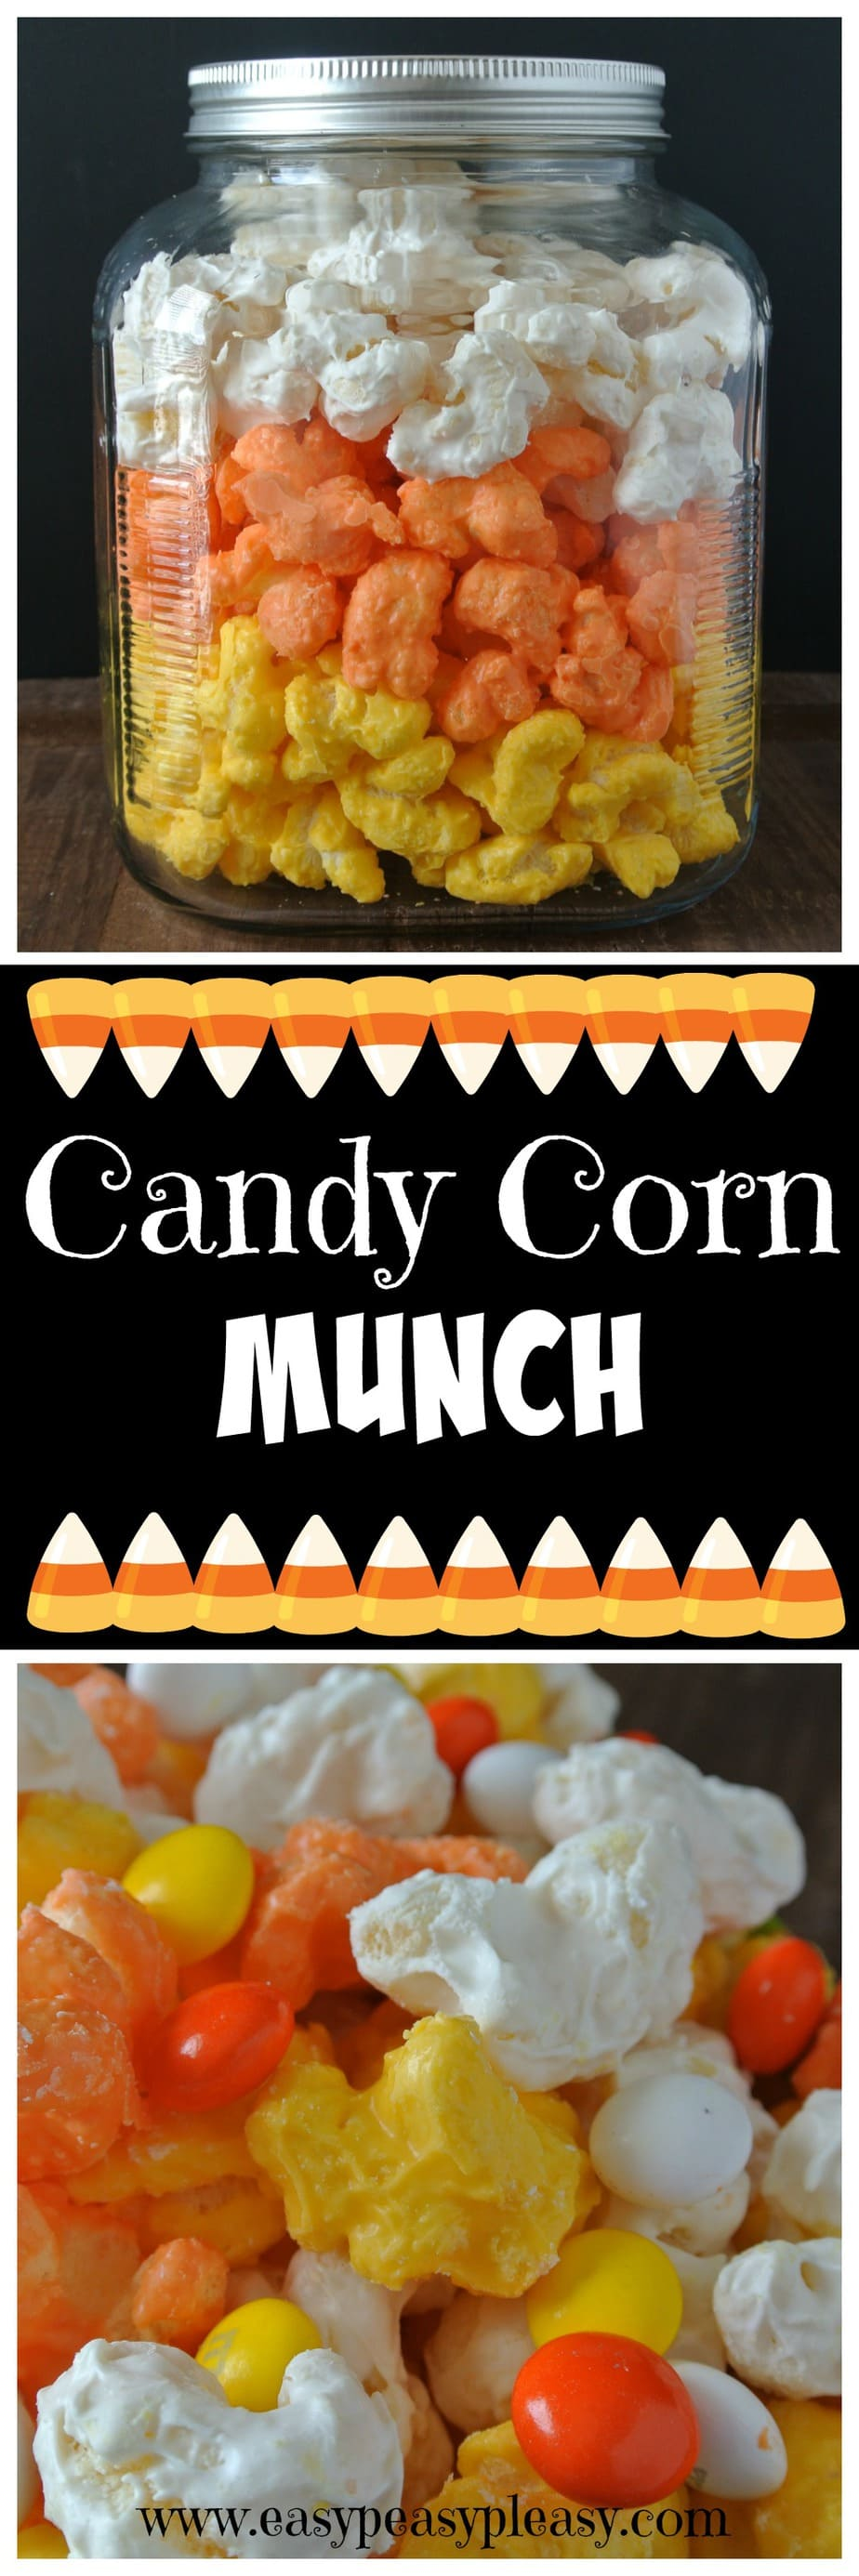 No popcorn here...Easy 3 Ingredient Candy Corn Munch is the perfect treat for Halloween!